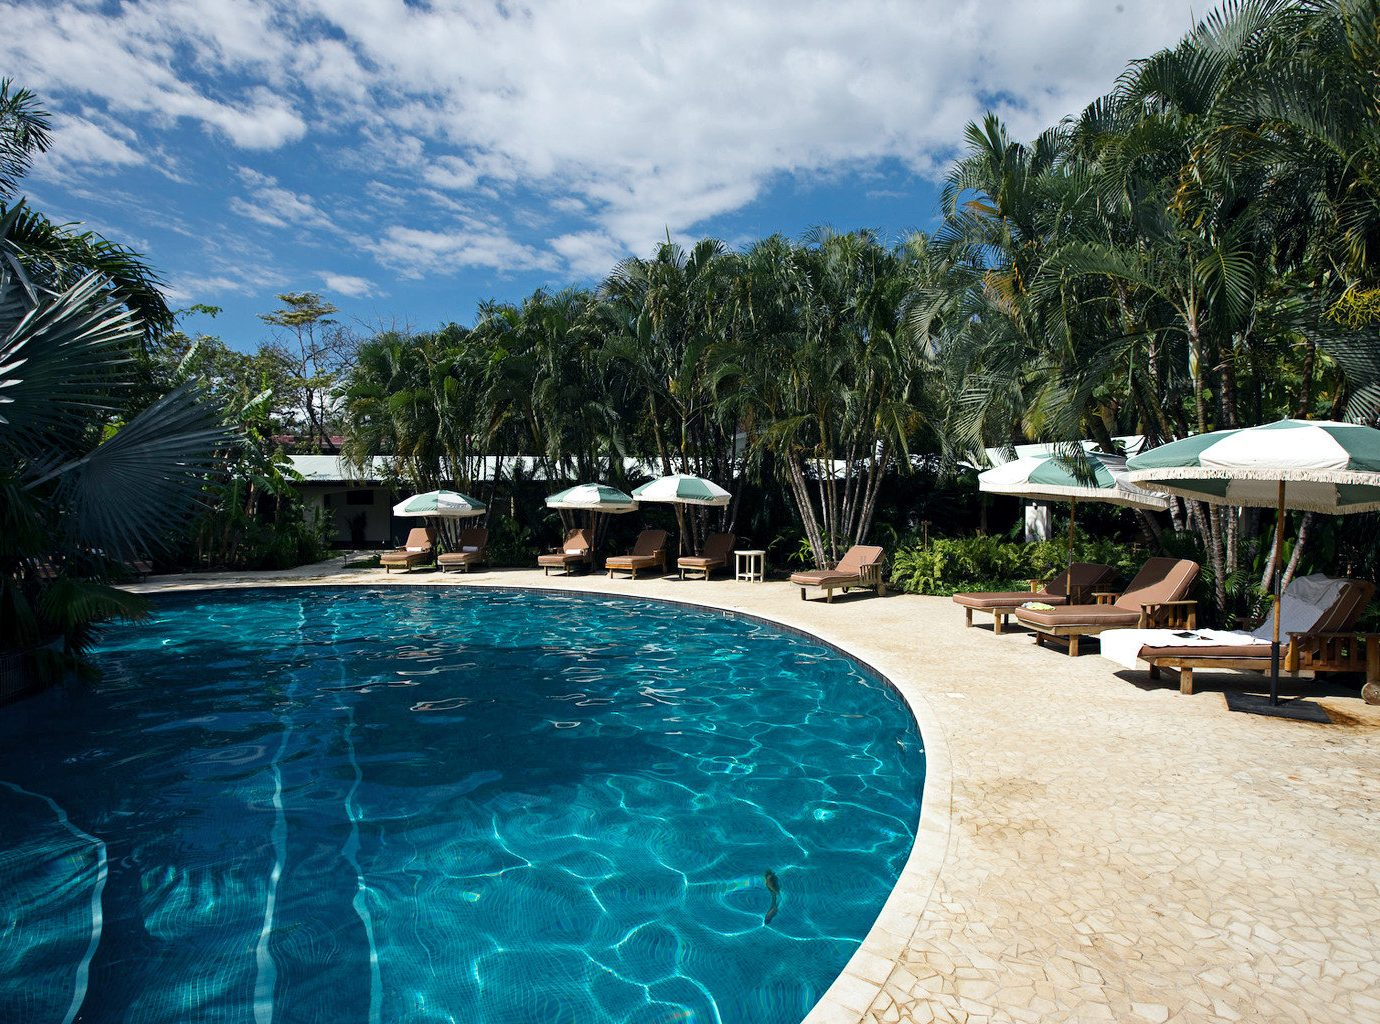 Pool at Harmony Hotel in Costa RIca